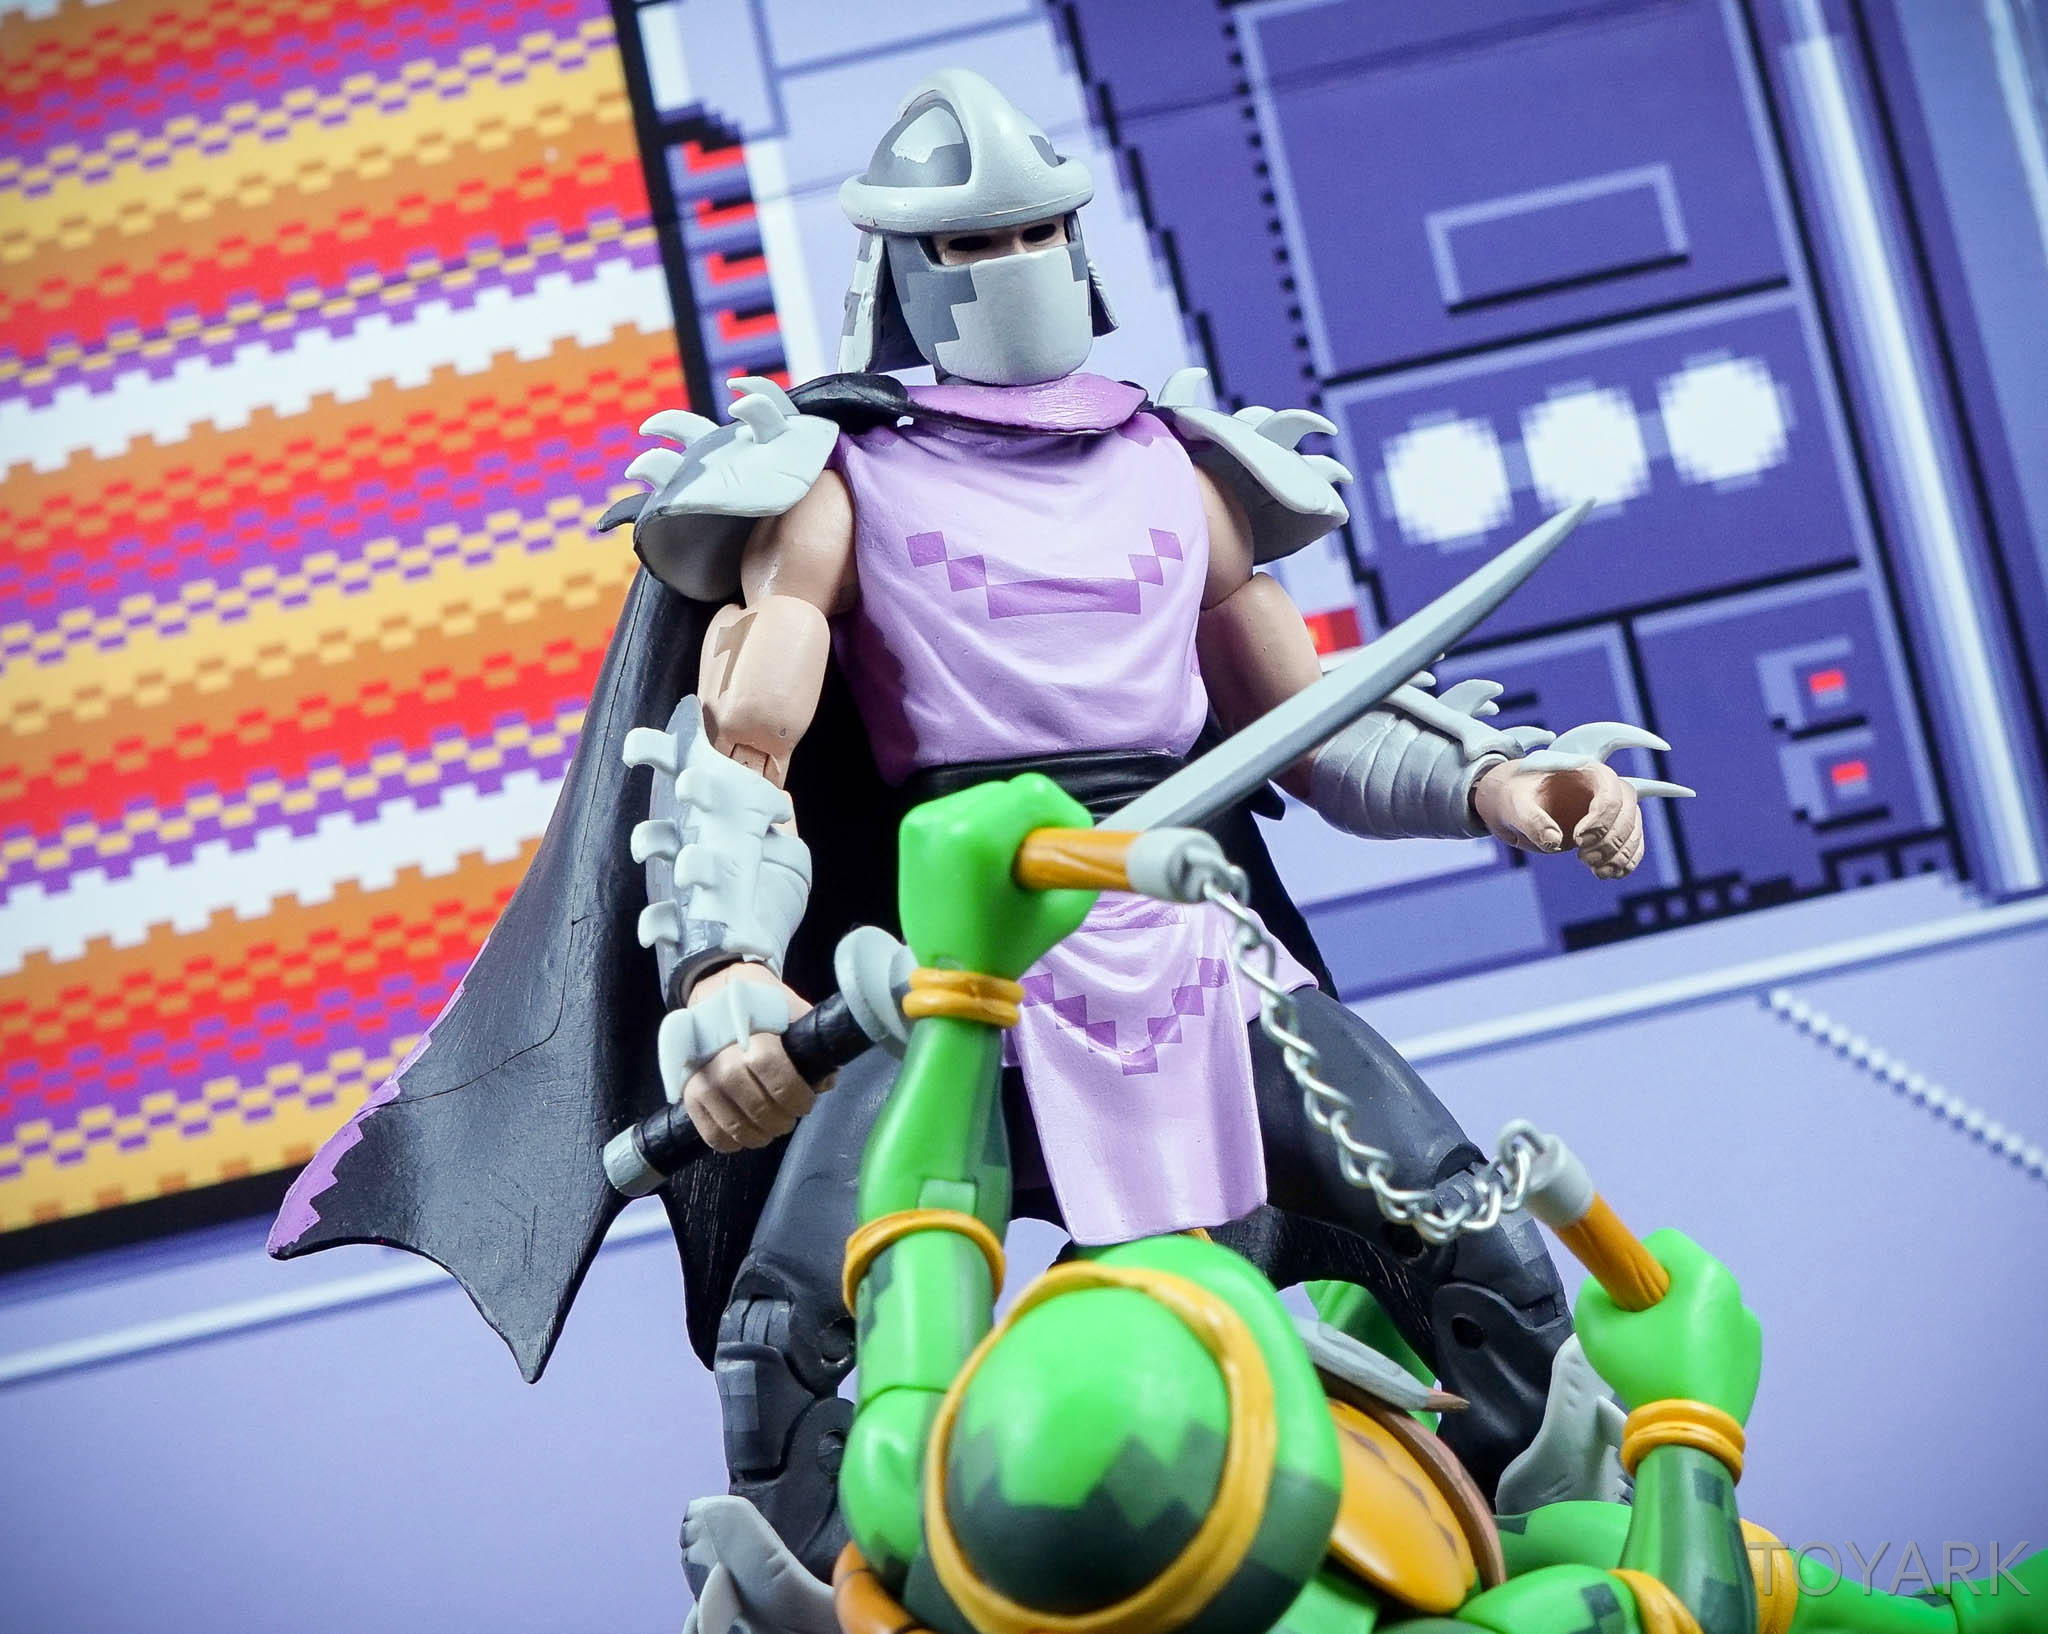 http://news.toyark.com/wp-content/uploads/sites/4/2016/08/SDCC2016-TMNT-Arcade-197.jpg